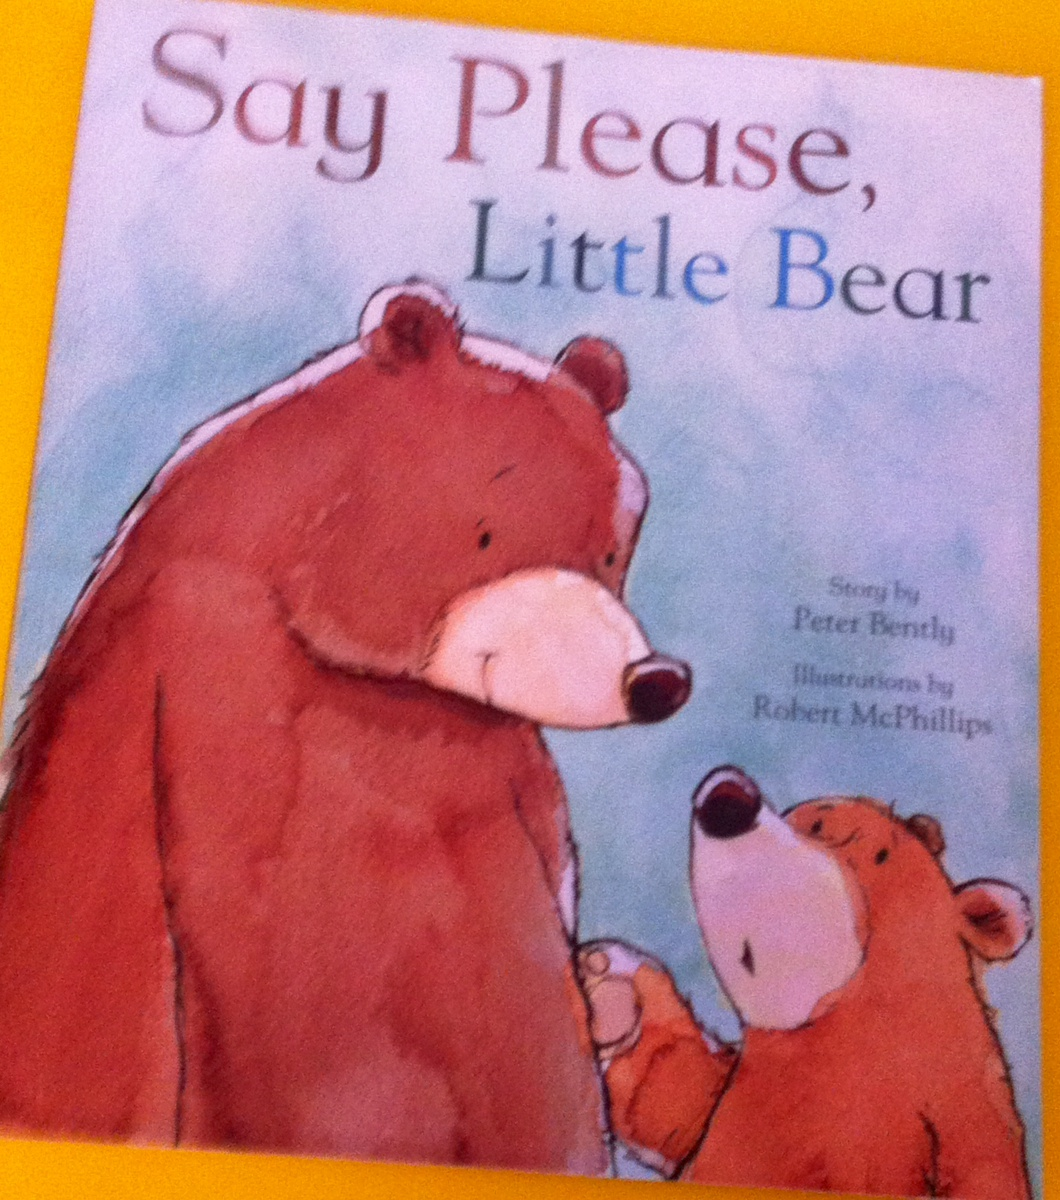 say please little bear